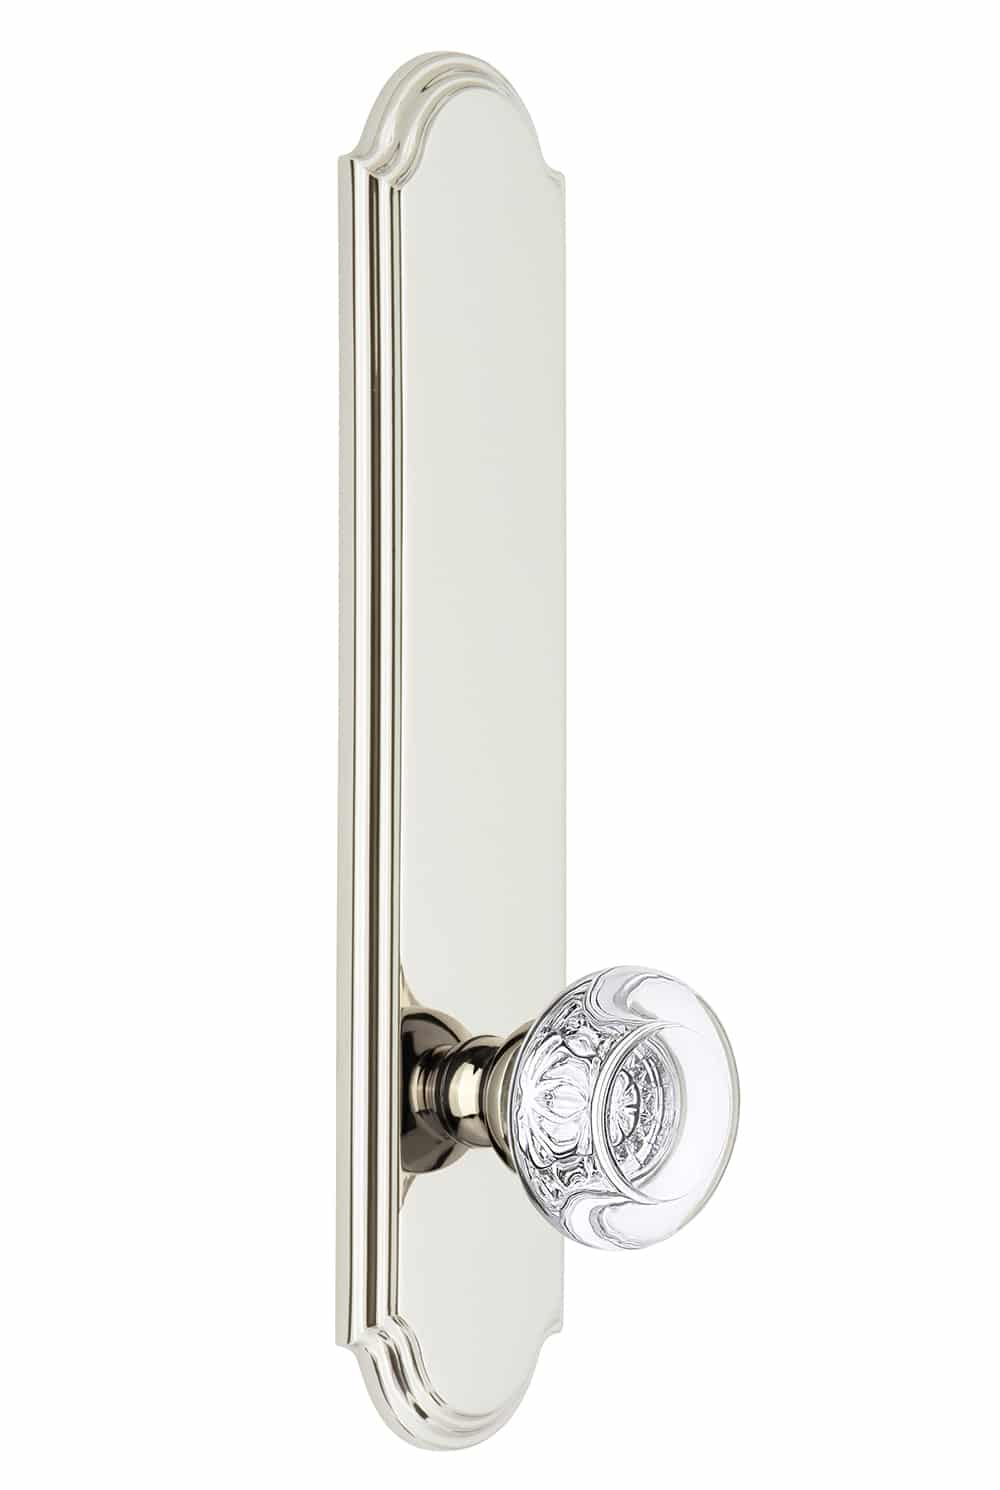 Grandeur Arc Tall Plate with Bordeaux Knob